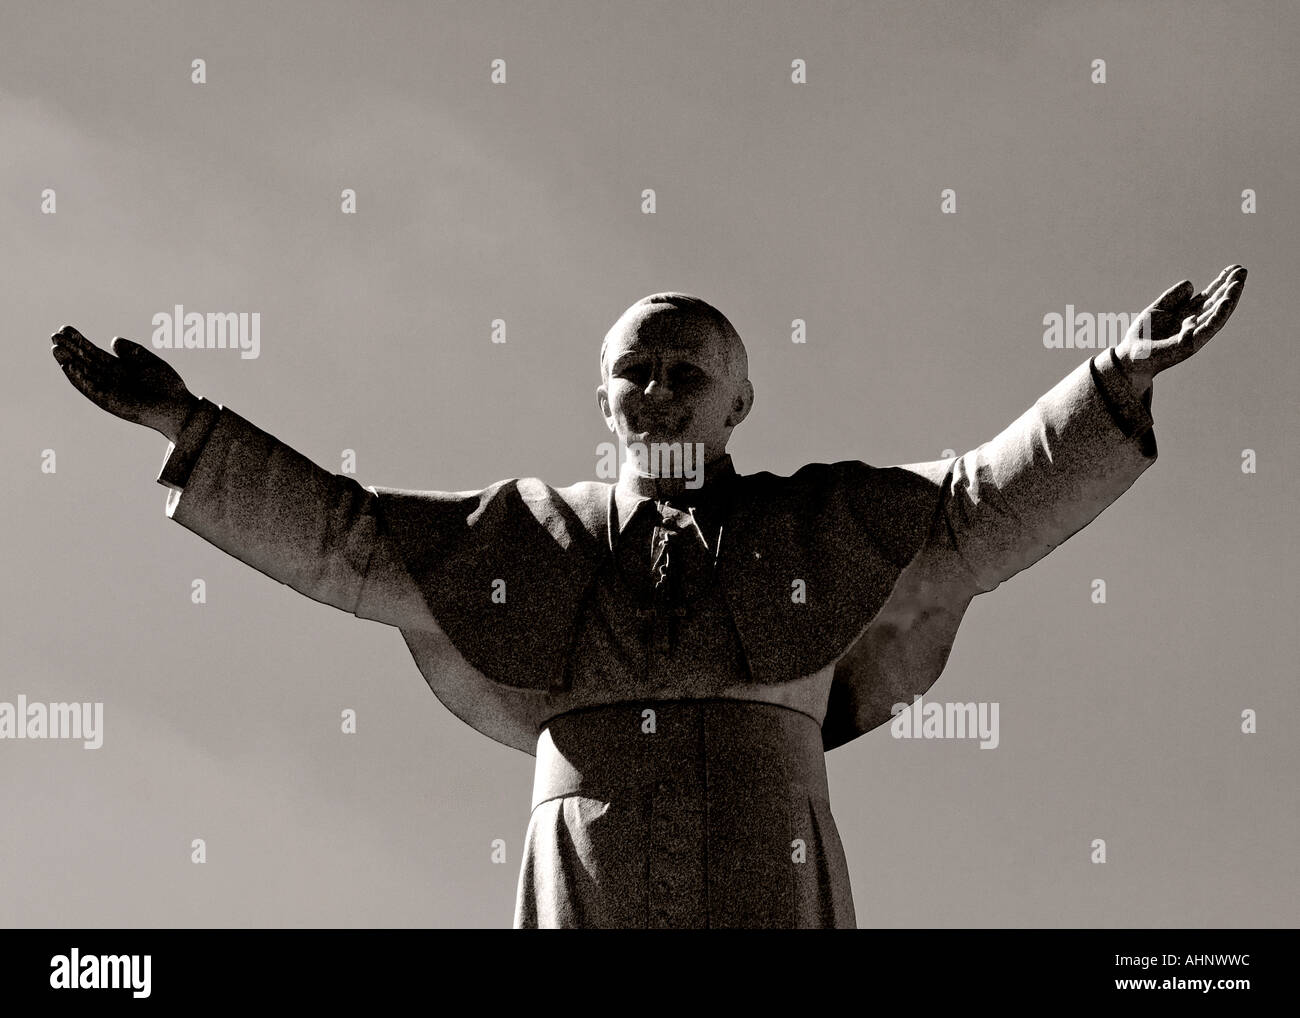 Pope John Paul II Statue in Monochrome - Stock Image